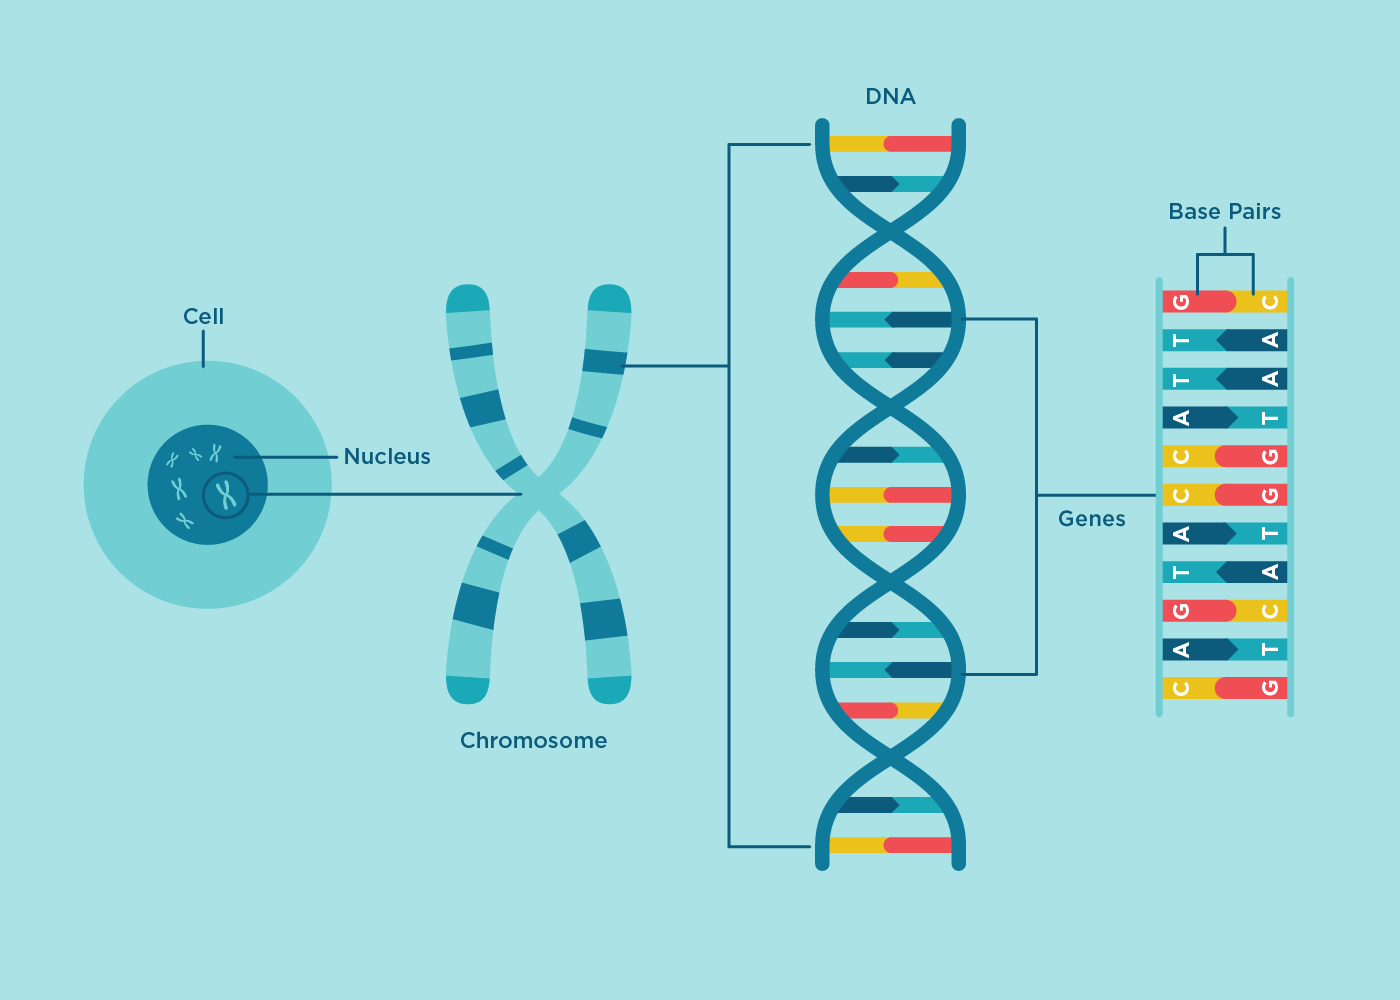 Color Diagram Of Dna - Electrical Work Wiring Diagram •